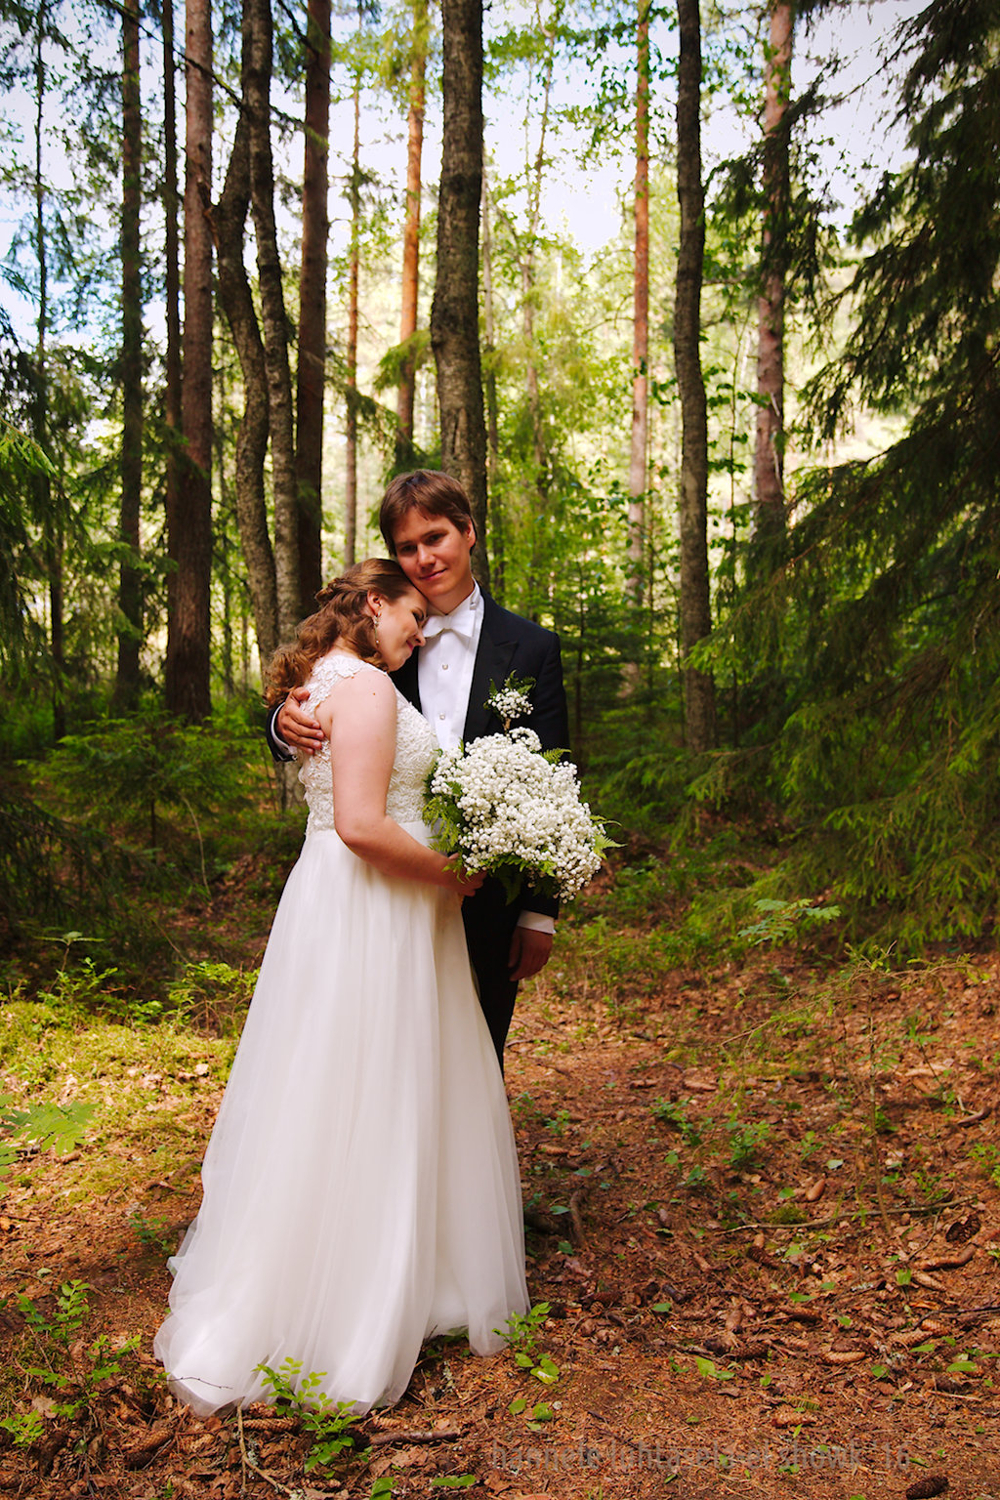 Wedding portrait in forest. location portraits